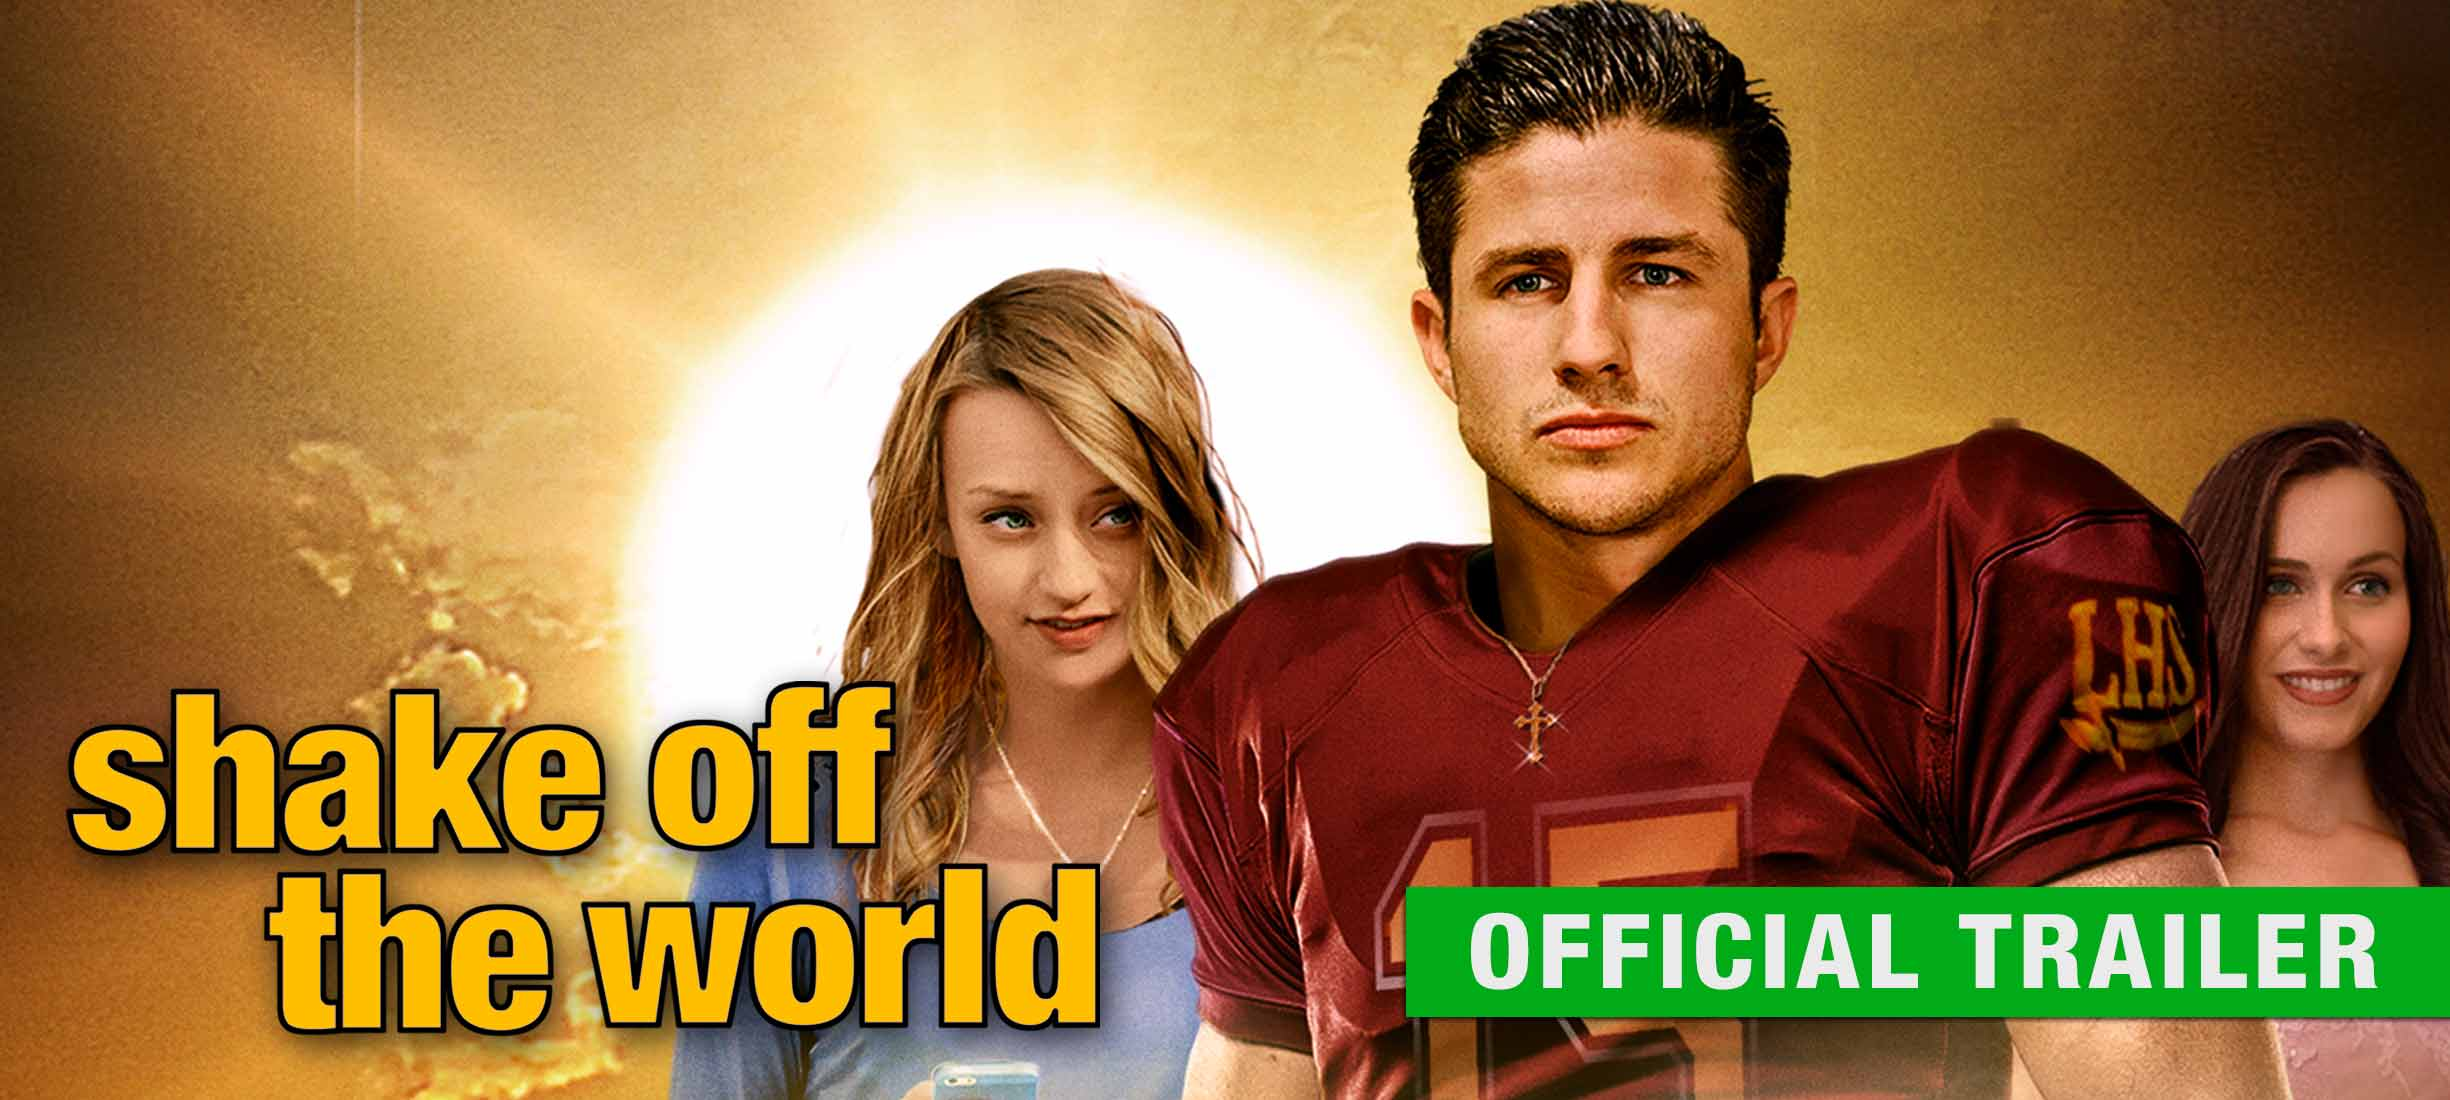 Shake Off the World: Trailer